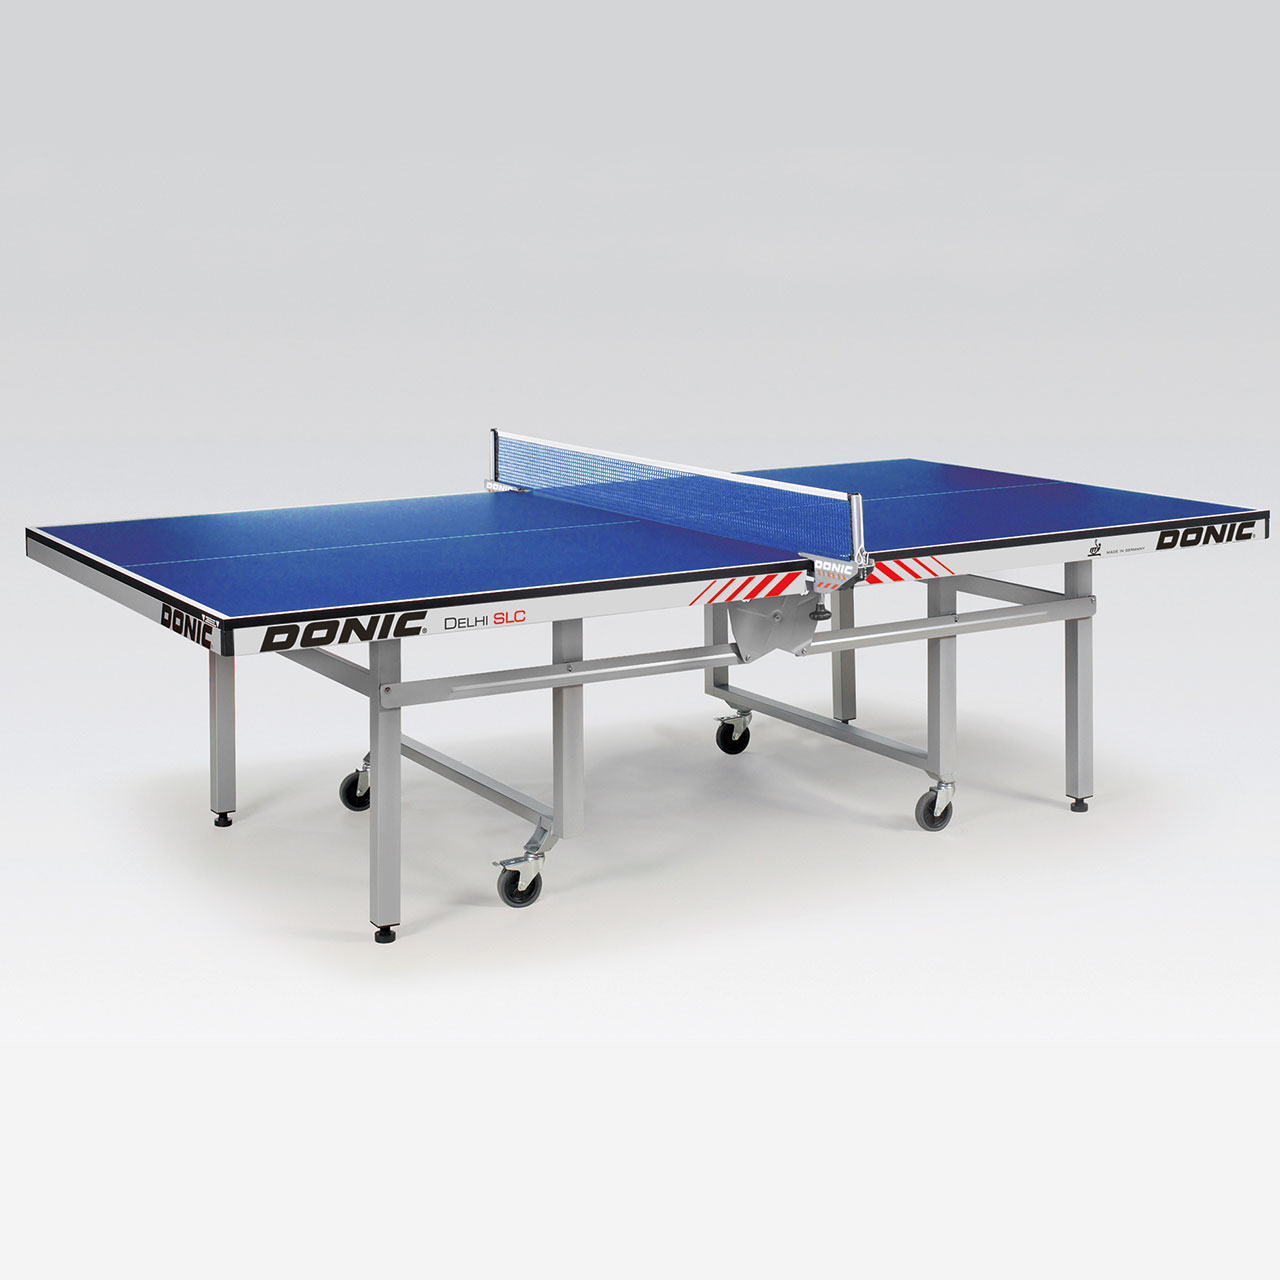 Donic Delhi SLC Table Tennis Table